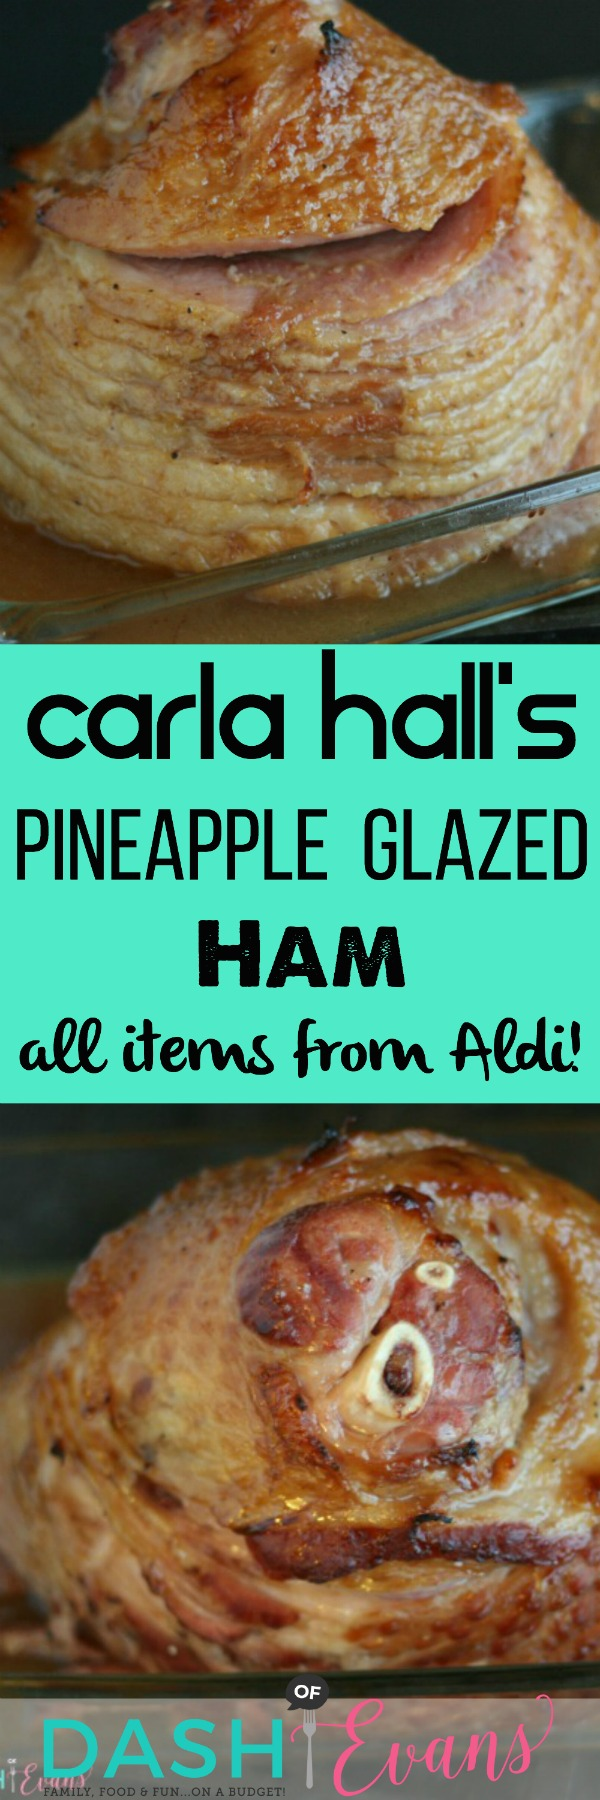 A delcious ham dinner is less than an hour away! Try this delicious pineapple glazed ham recipe from Carla Hall. All ingredients are from Aldi, too! via @DashOfEvans